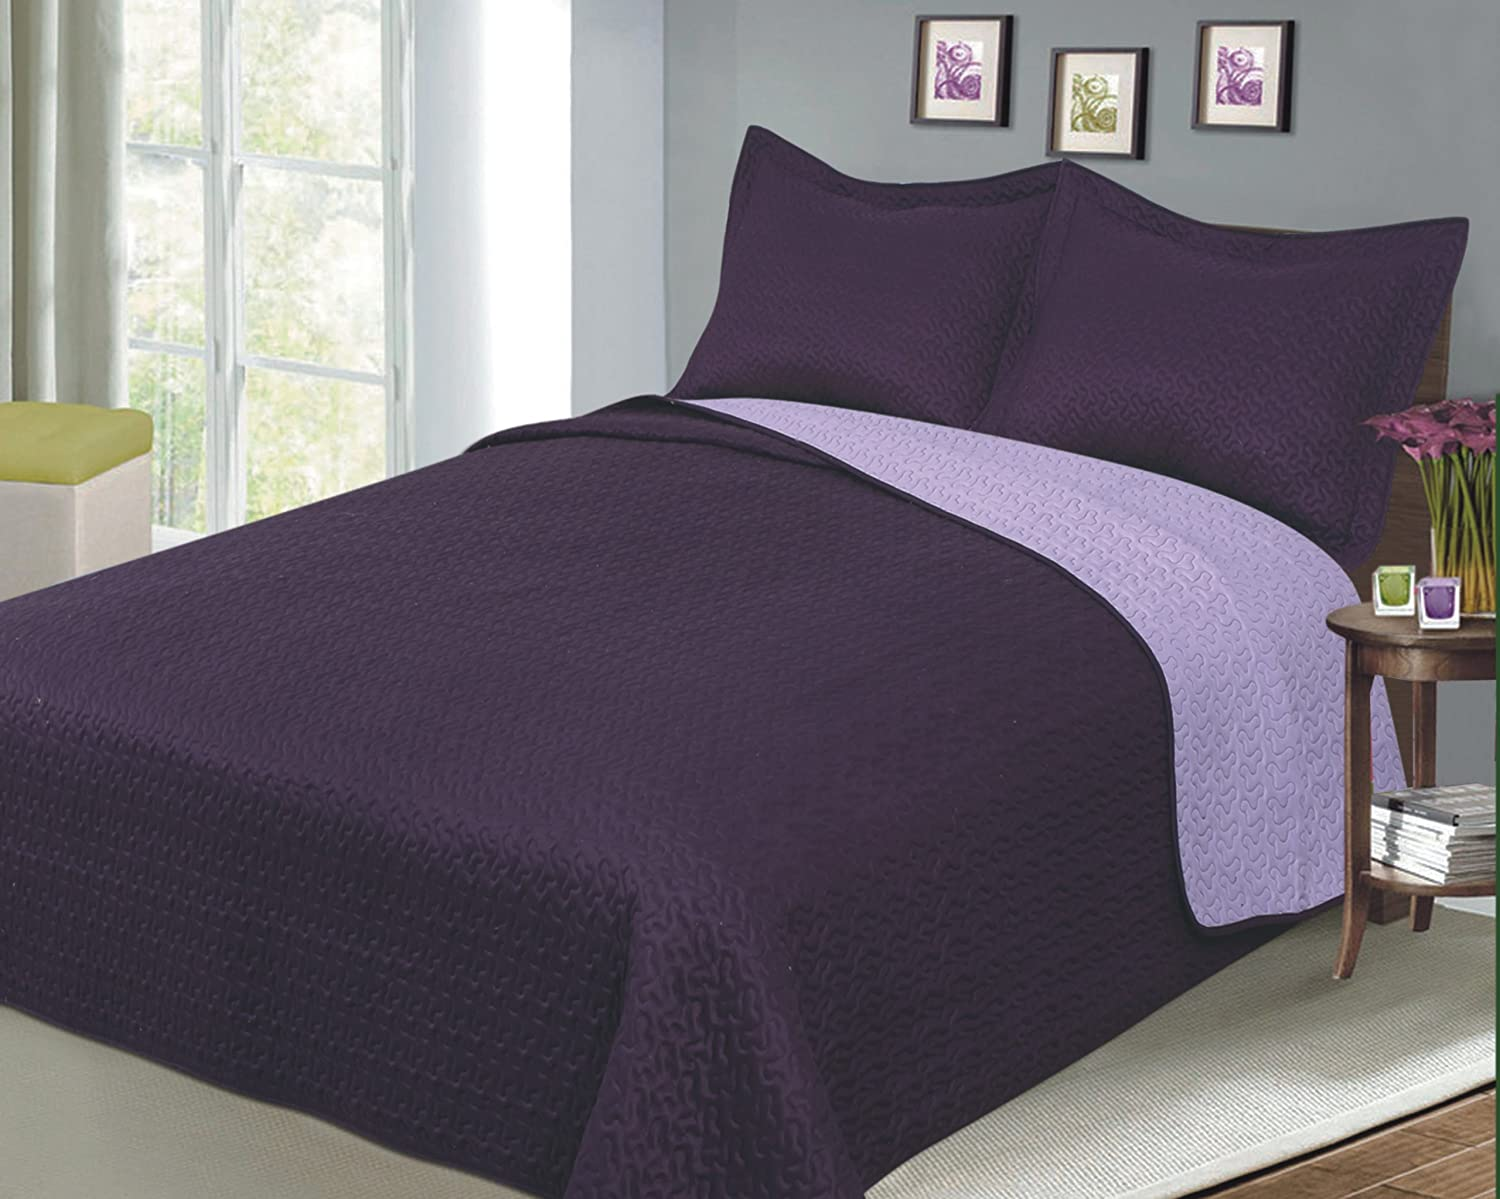 Reversible Solid Color Mini Quilt Sets, Twin, Plum/Lilac